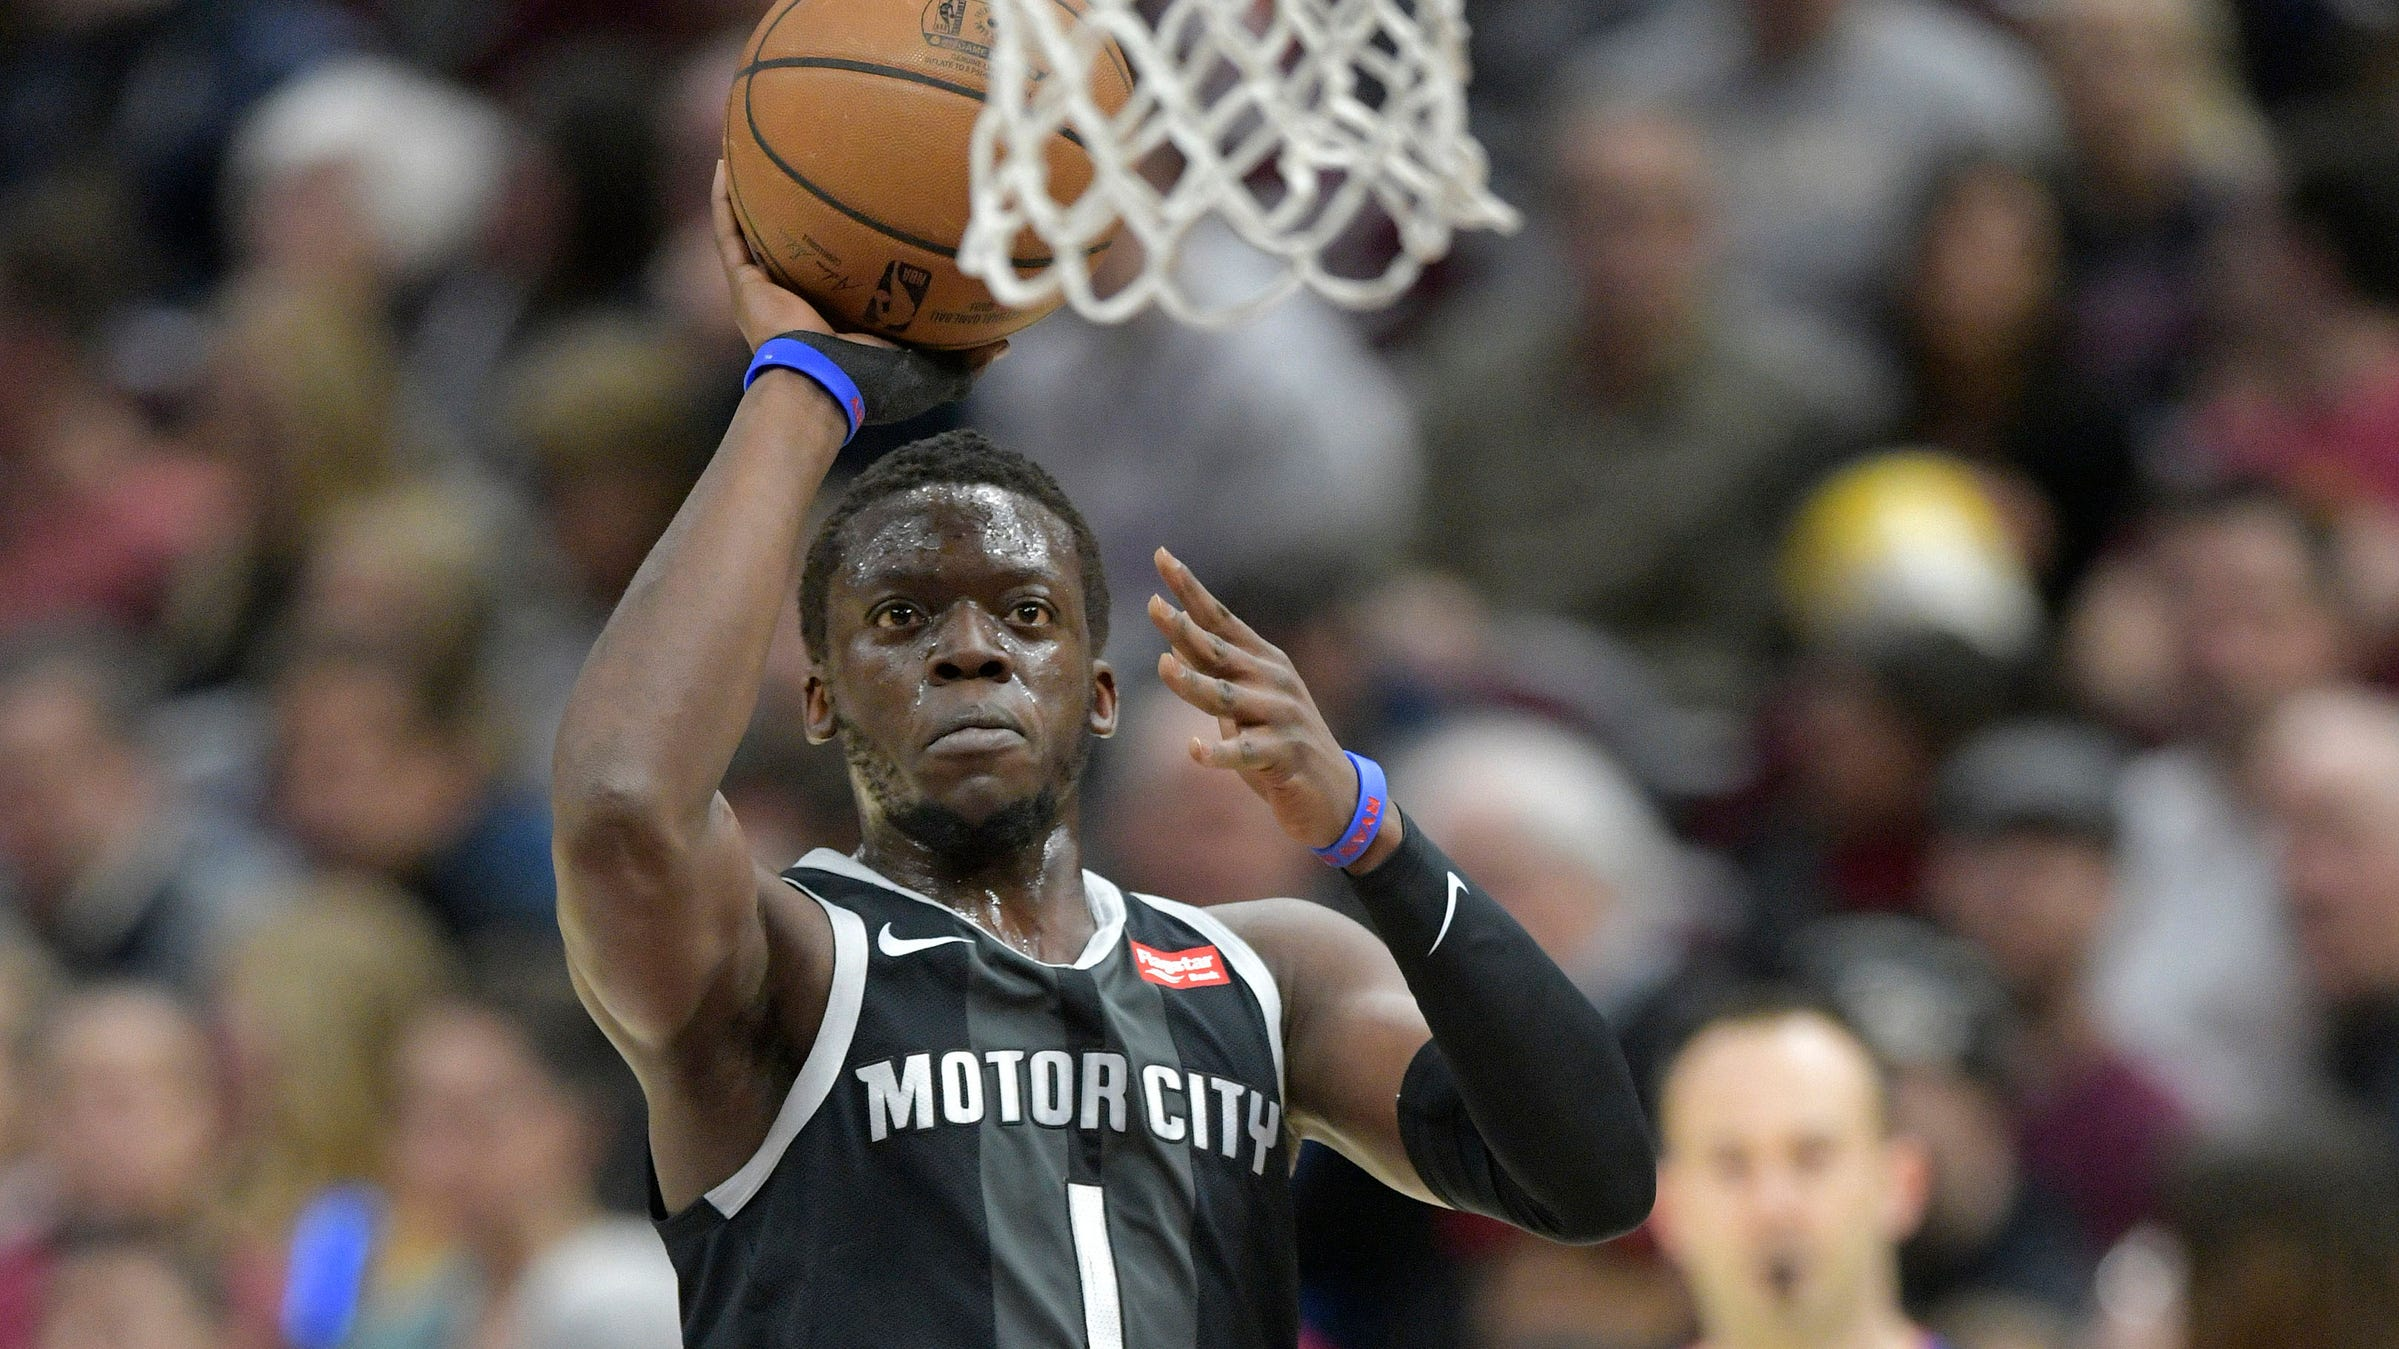 Detroit Pistons guard Reggie Jackson drives to the basket in the first quarter against the Cleveland Cavaliers at Quicken Loans Arena, March 18, 2019.